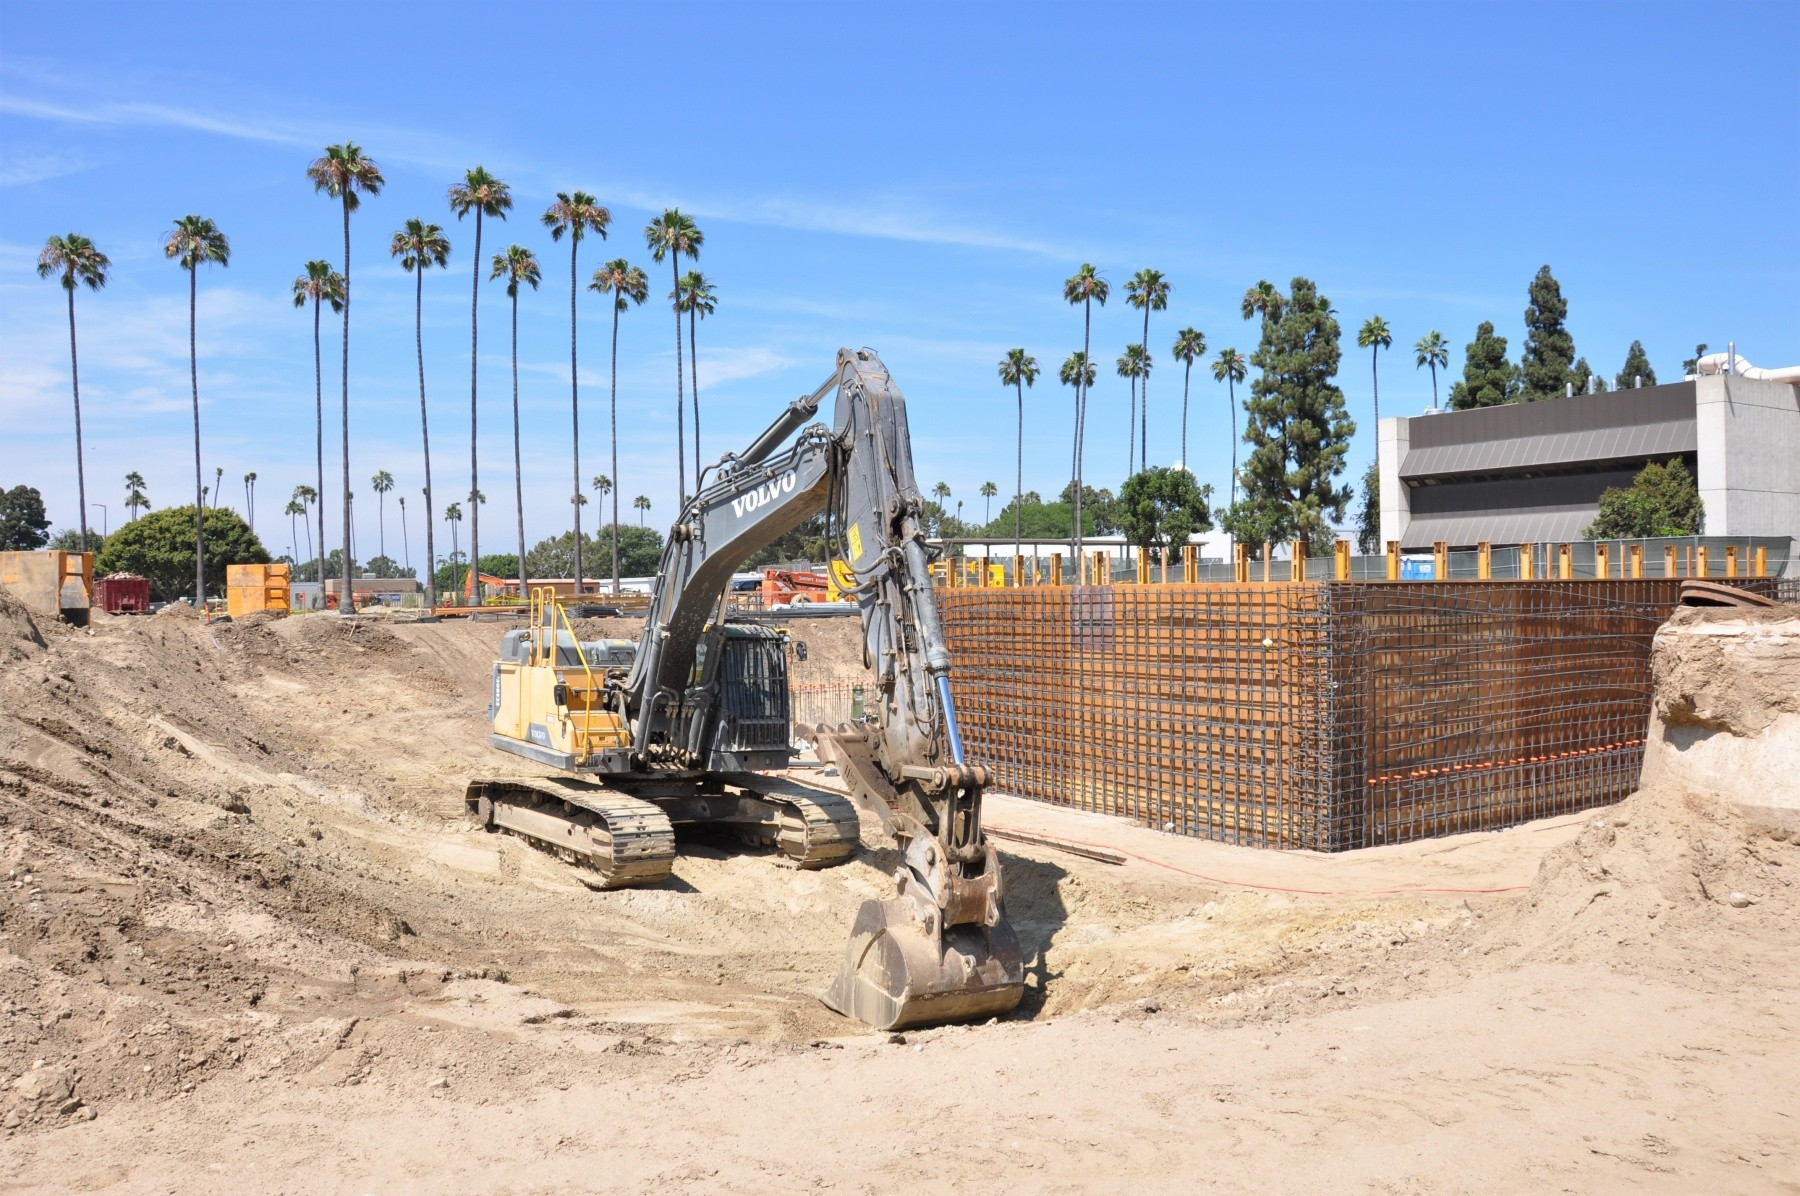 Top Corps general tours Golden State projects | Article | The United